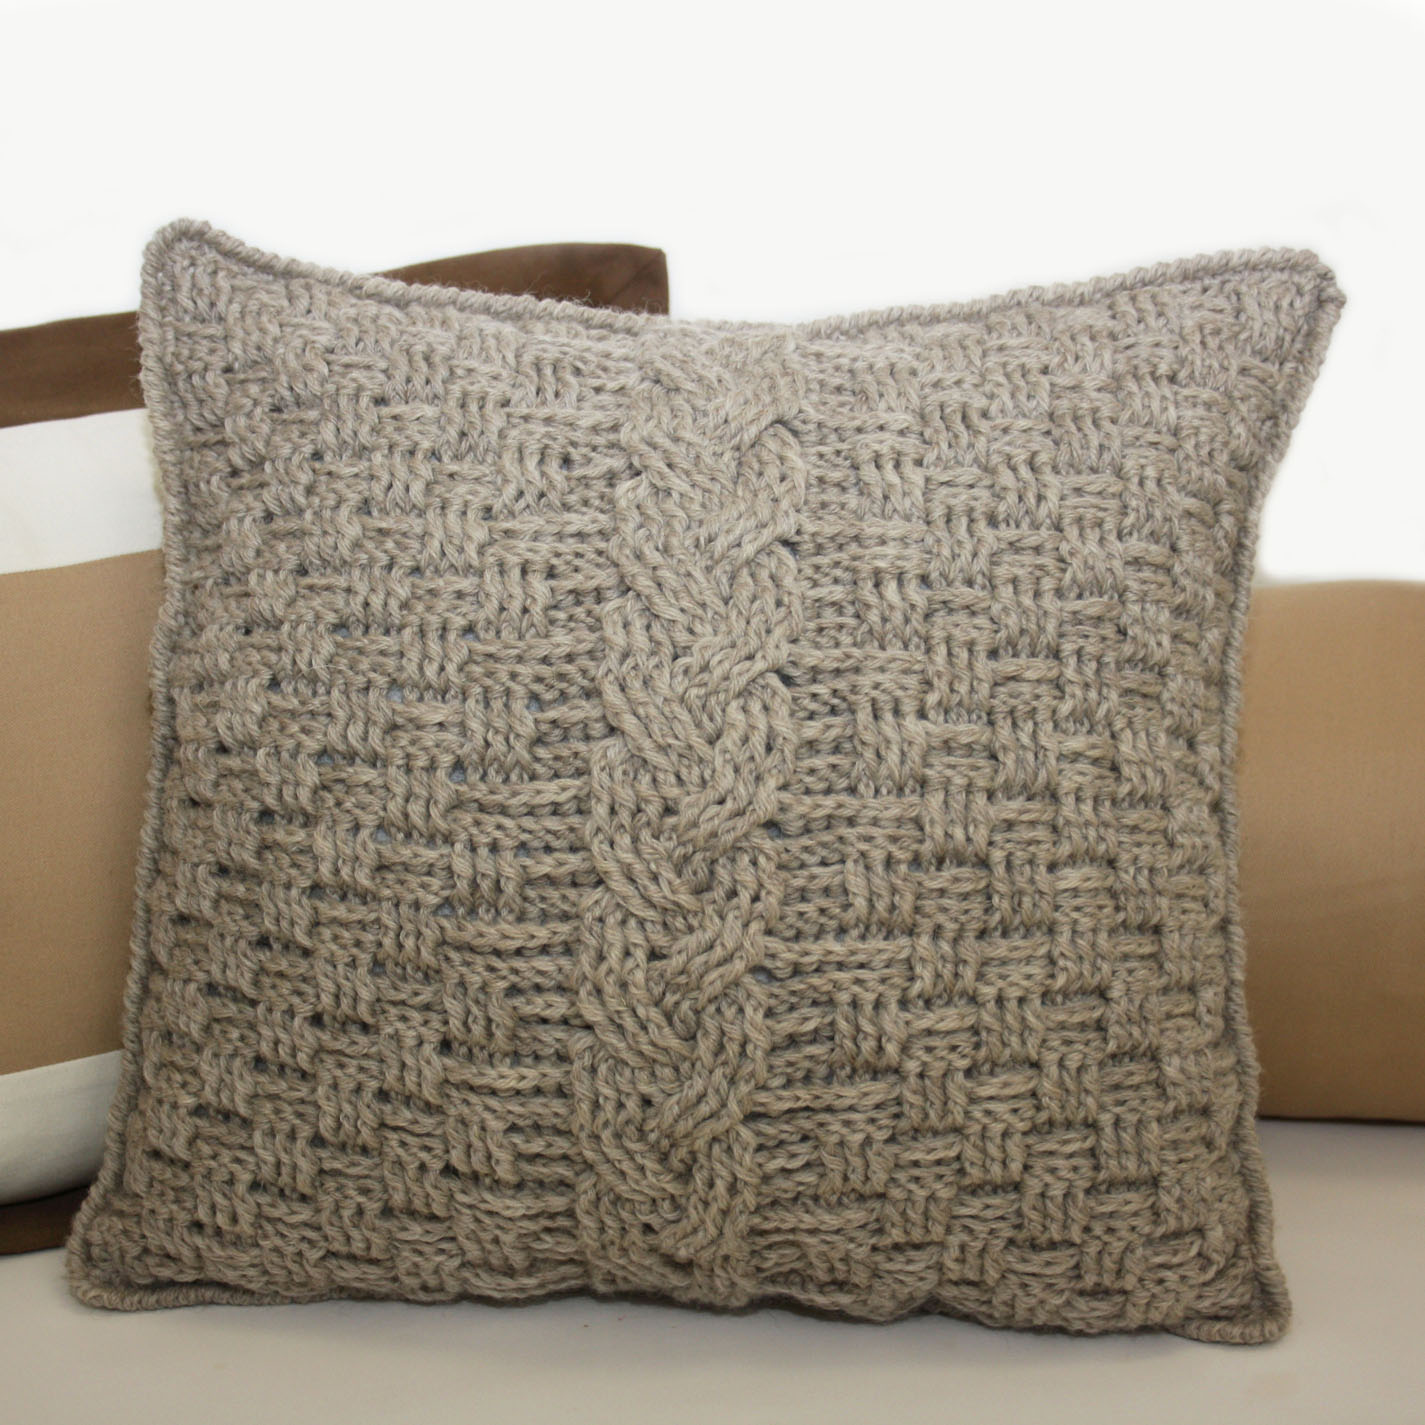 Crochet Pillow Patterns : ... ?sew?cute design shop: new crochet pattern - aran accent pillow